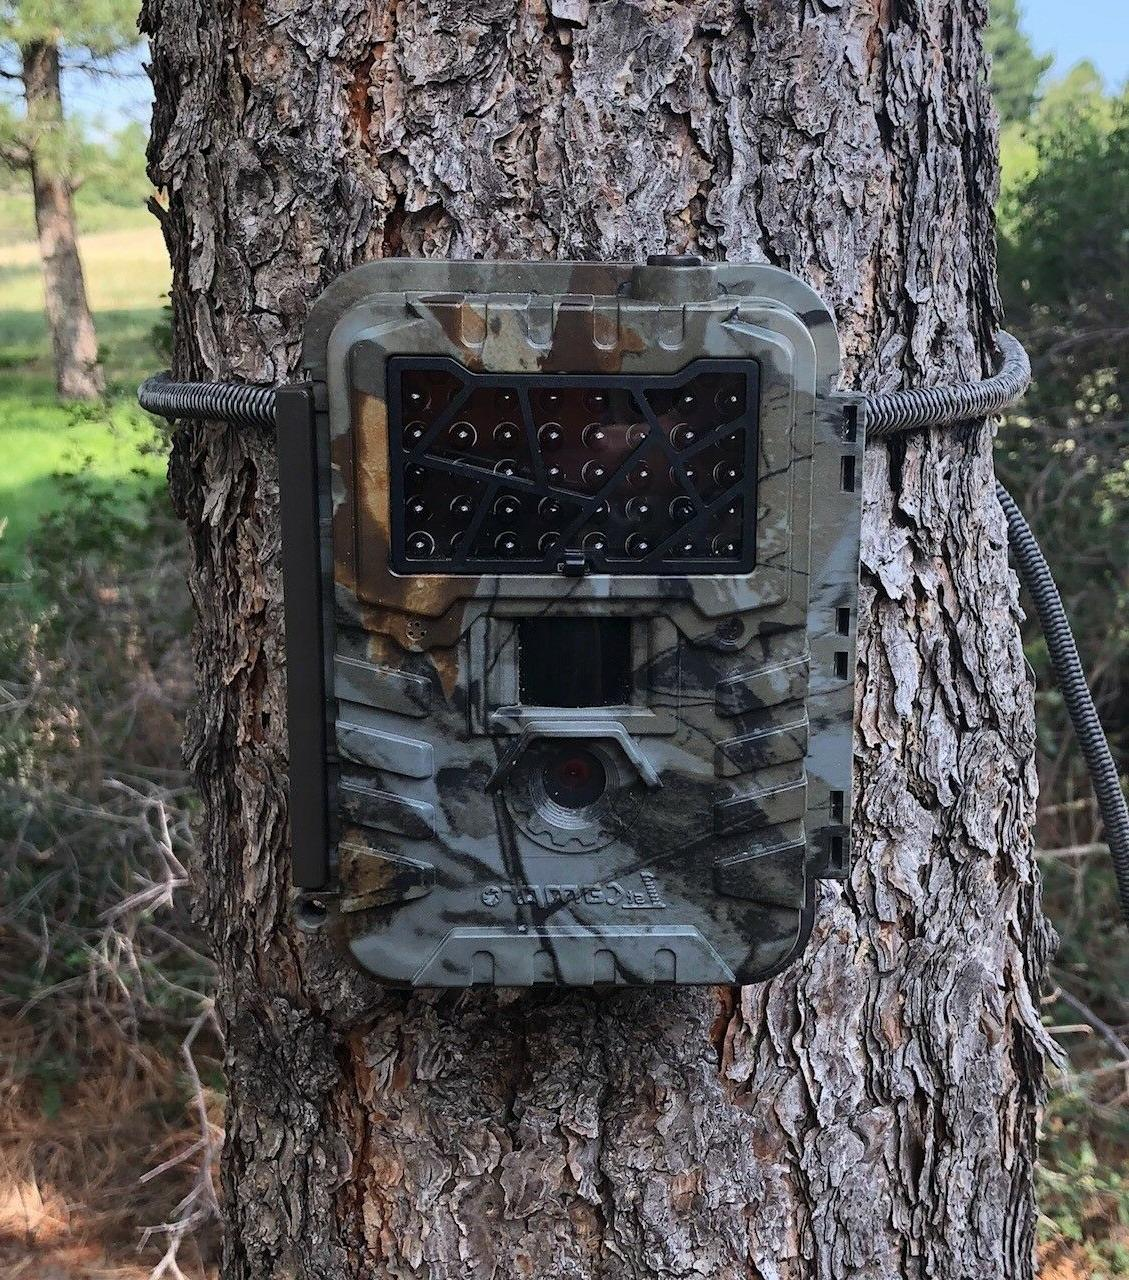 1stCamPro Trail Camera Mounting Adjustable Secure